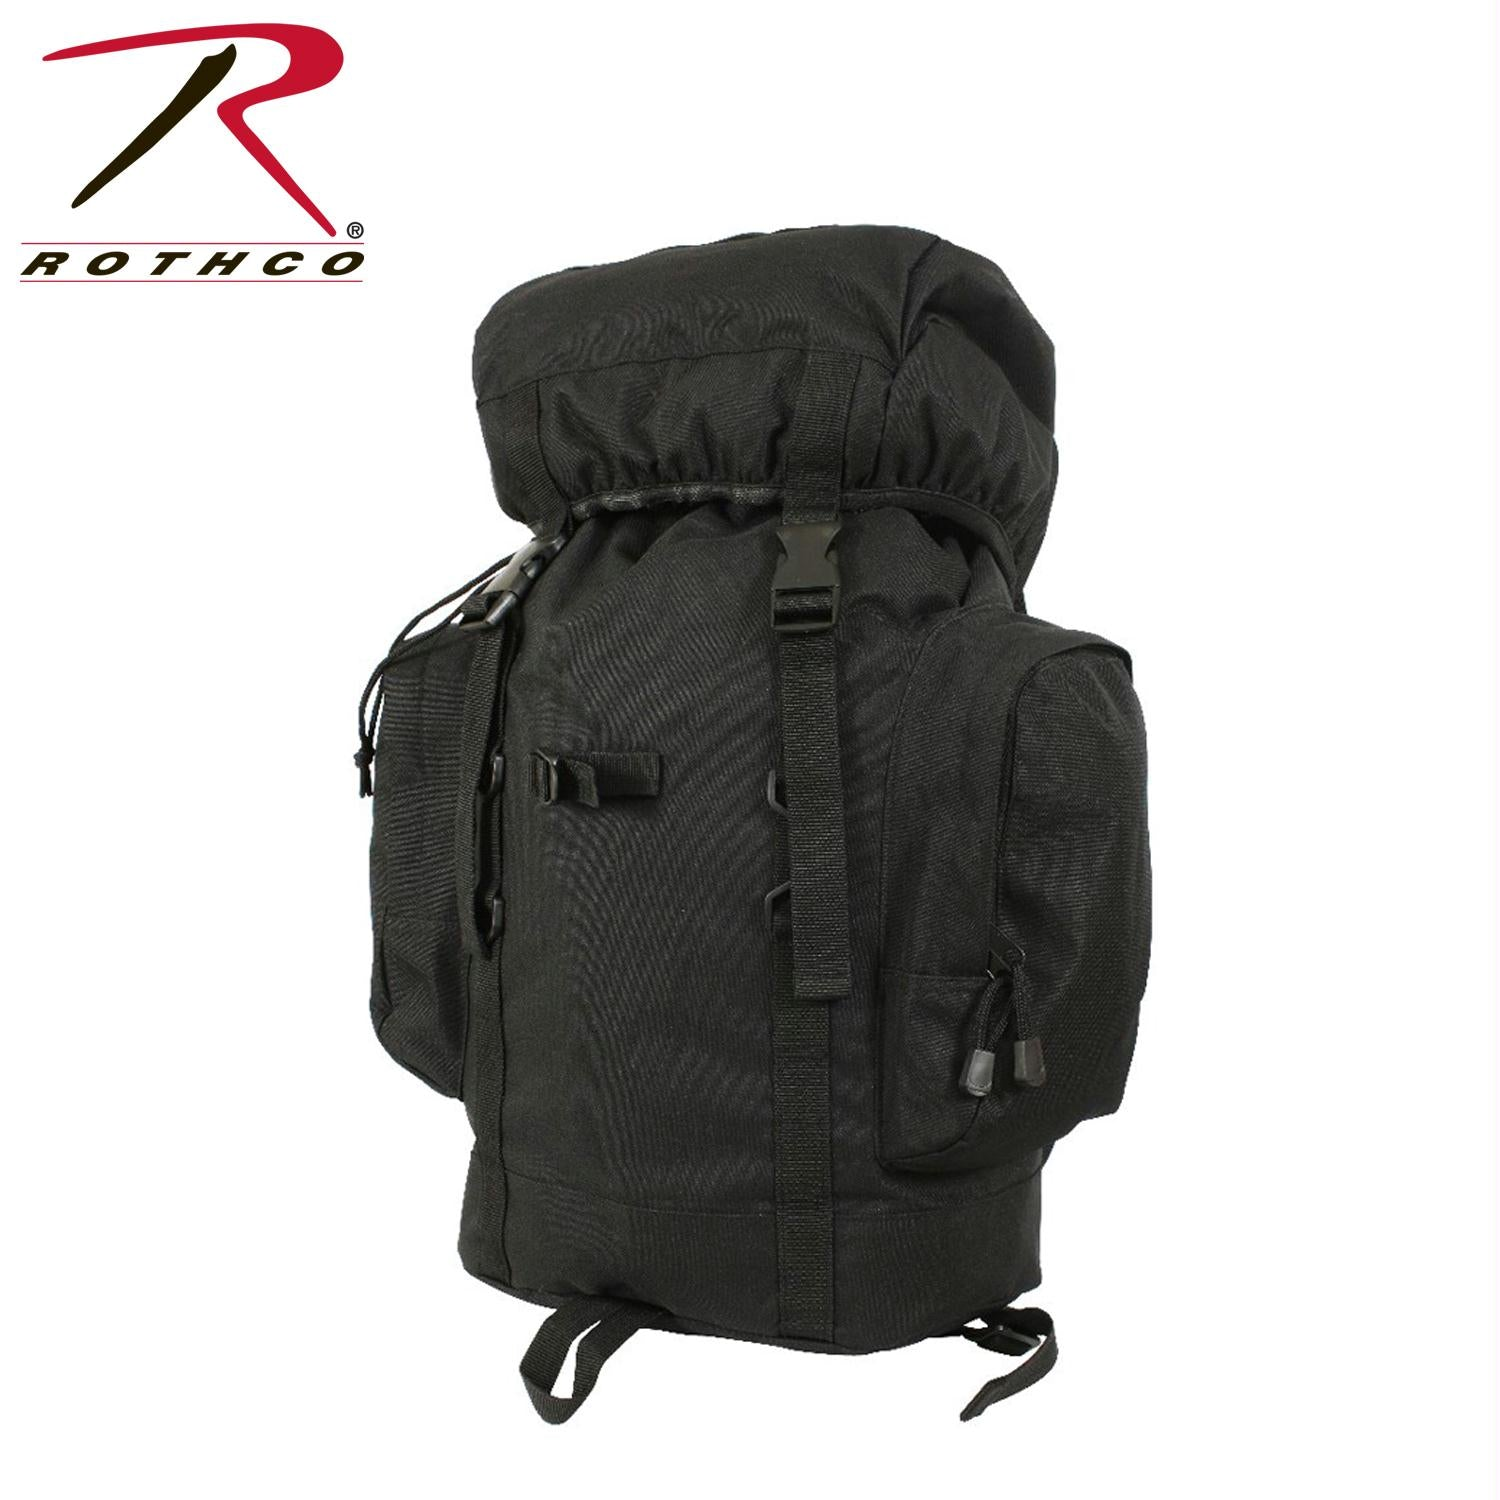 Rothco 25L Tactical Backpack - Black